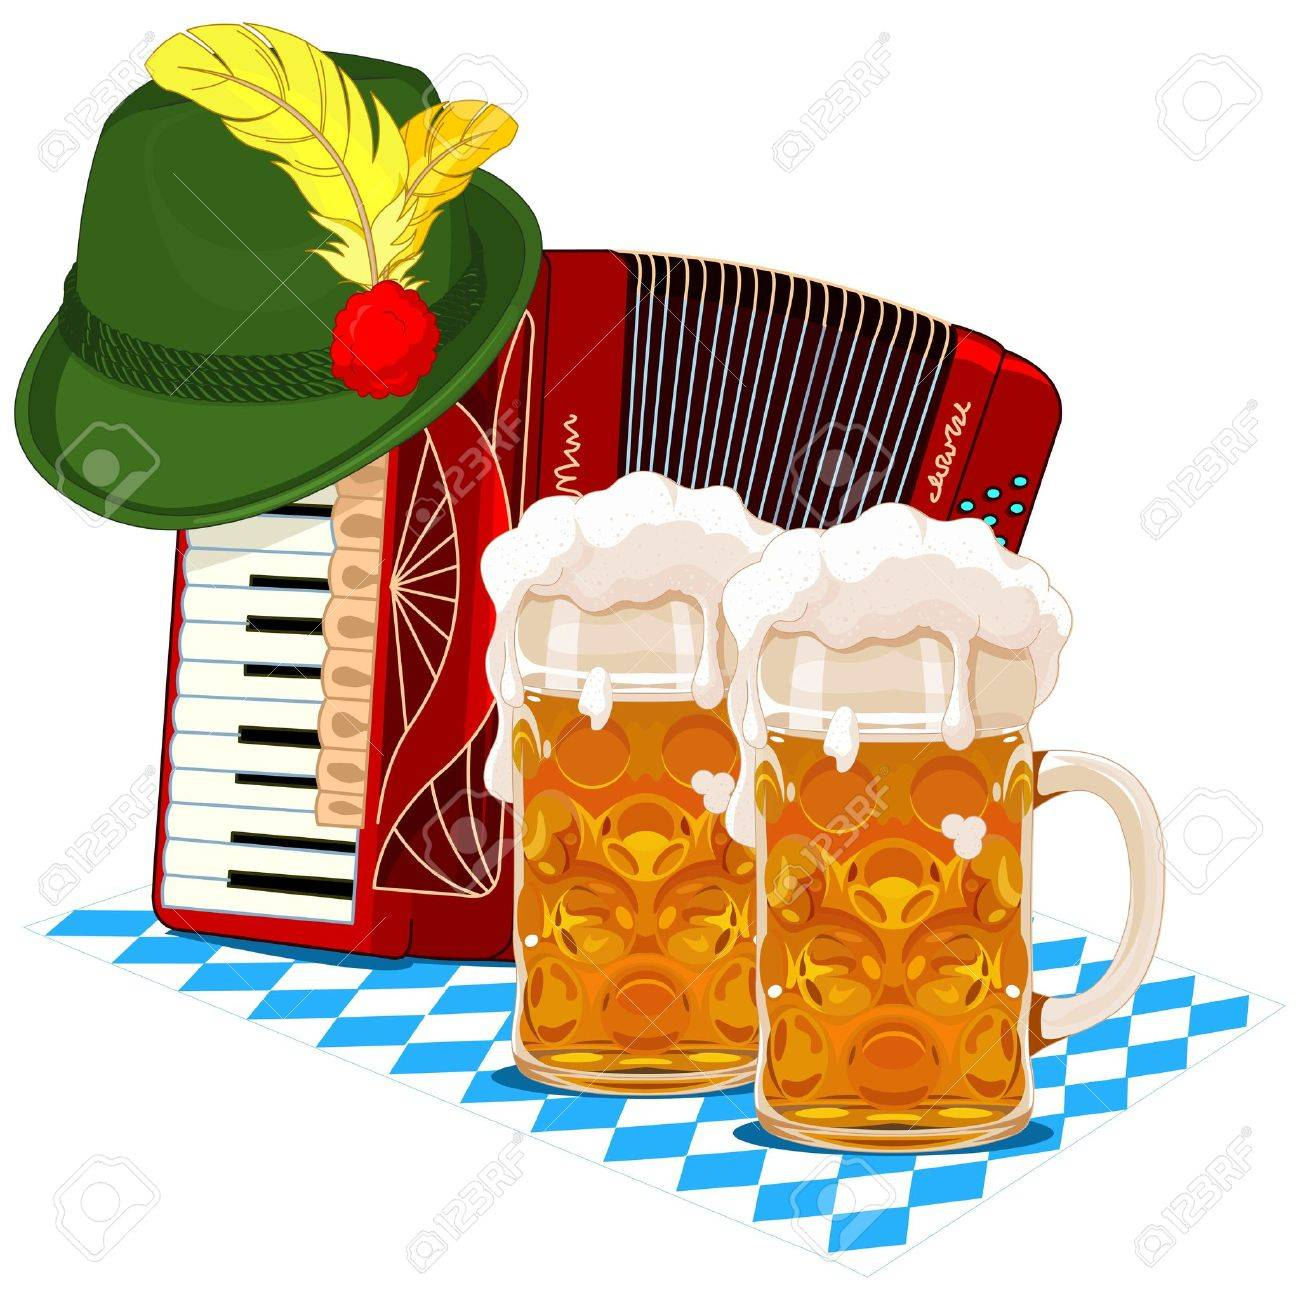 Oktoberfest design with accordion, beer and Bavarian hat.